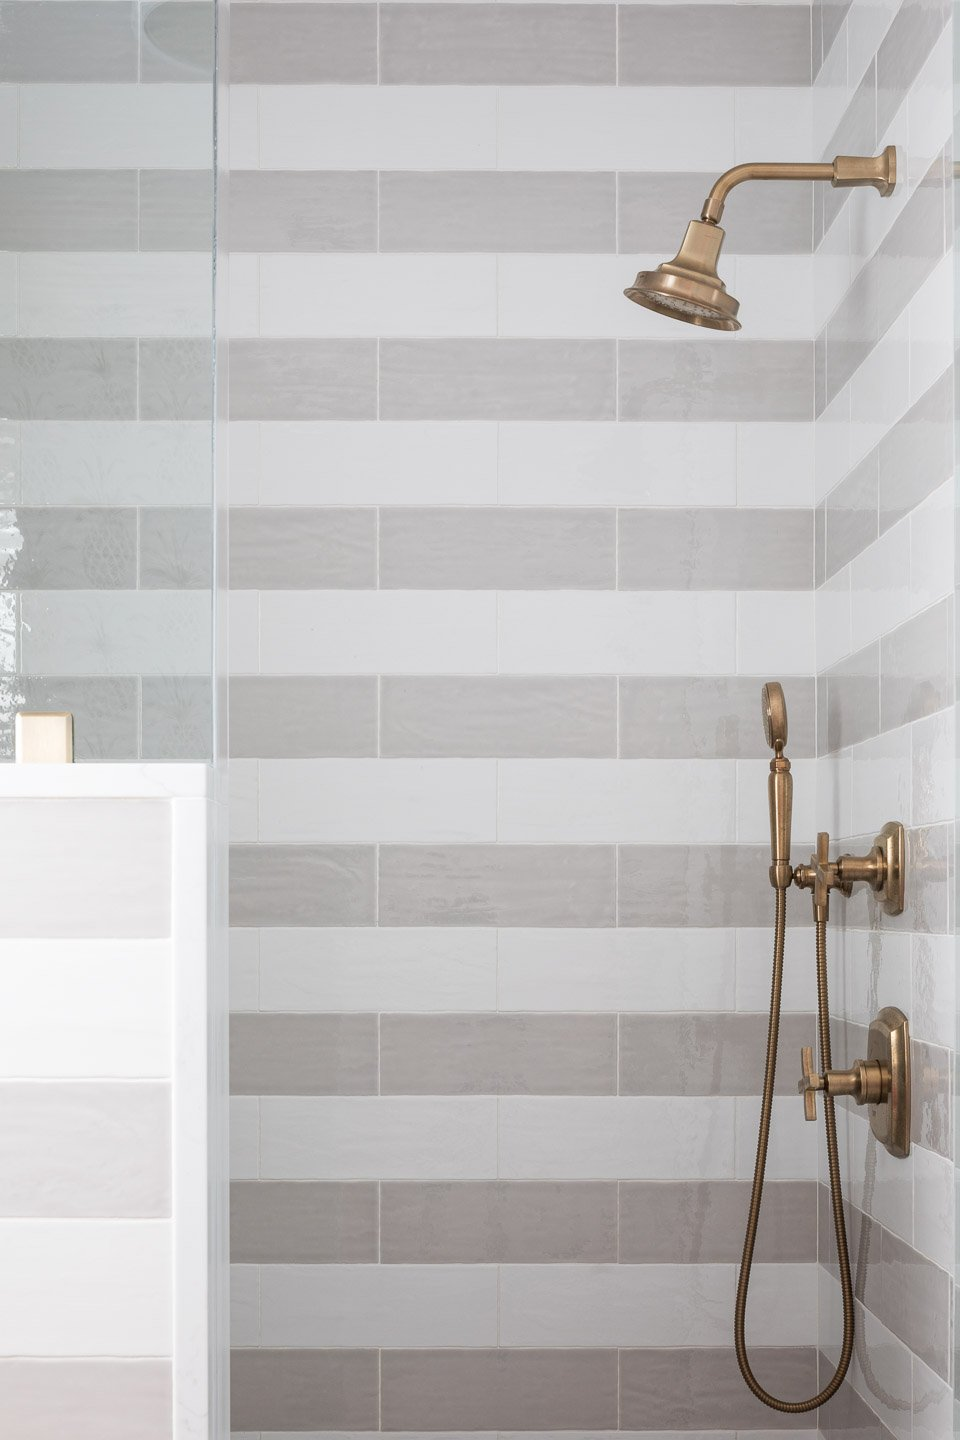 Blakely Interior Design | The Jersey Palm Project | Daughter's Bathroom Shower